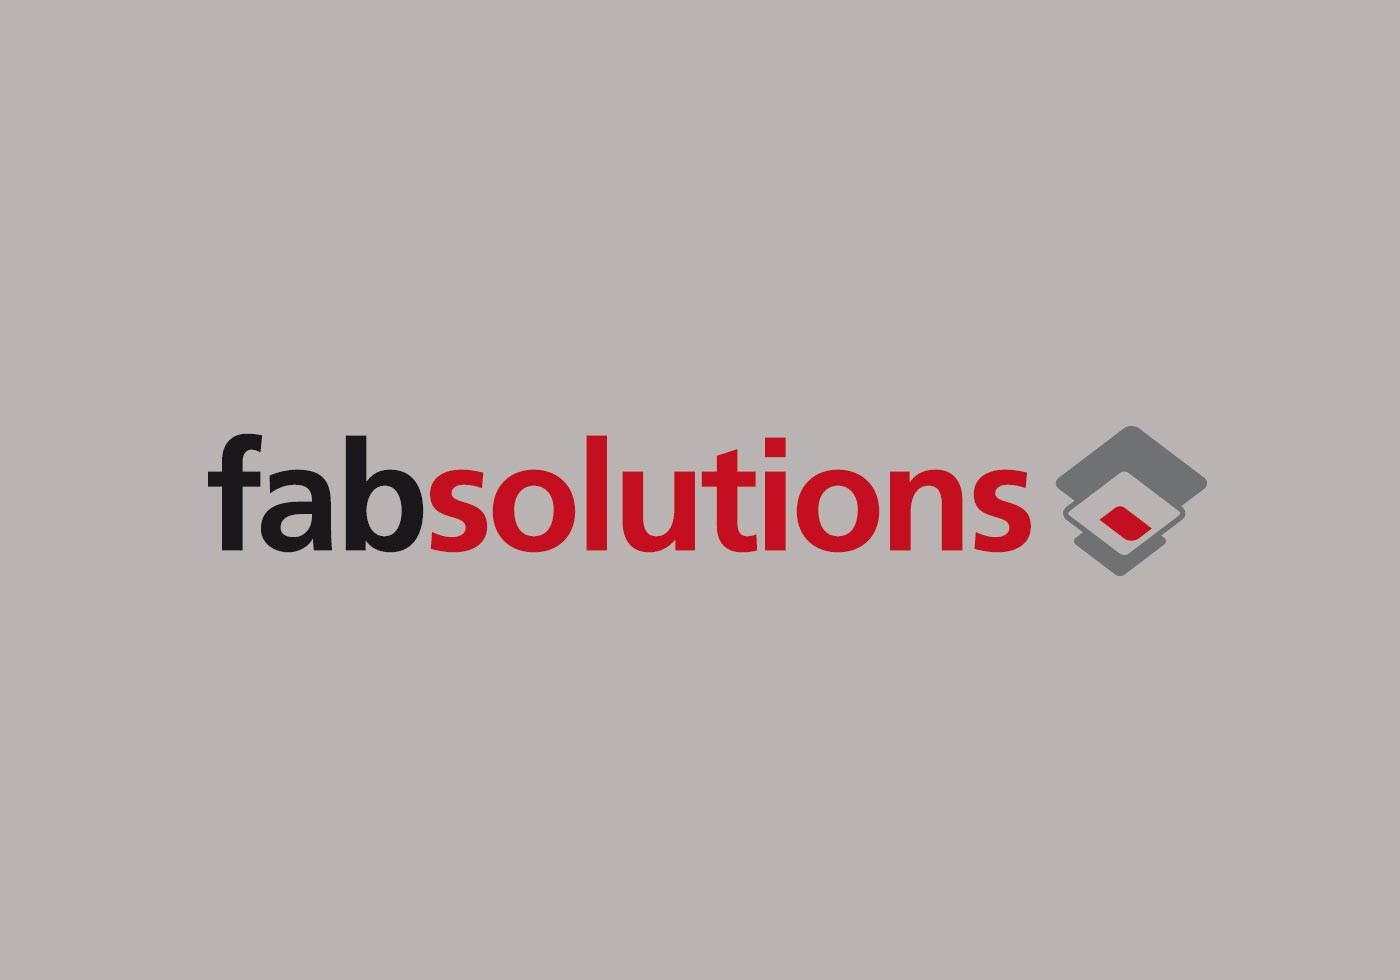 Fabsolutions<br>